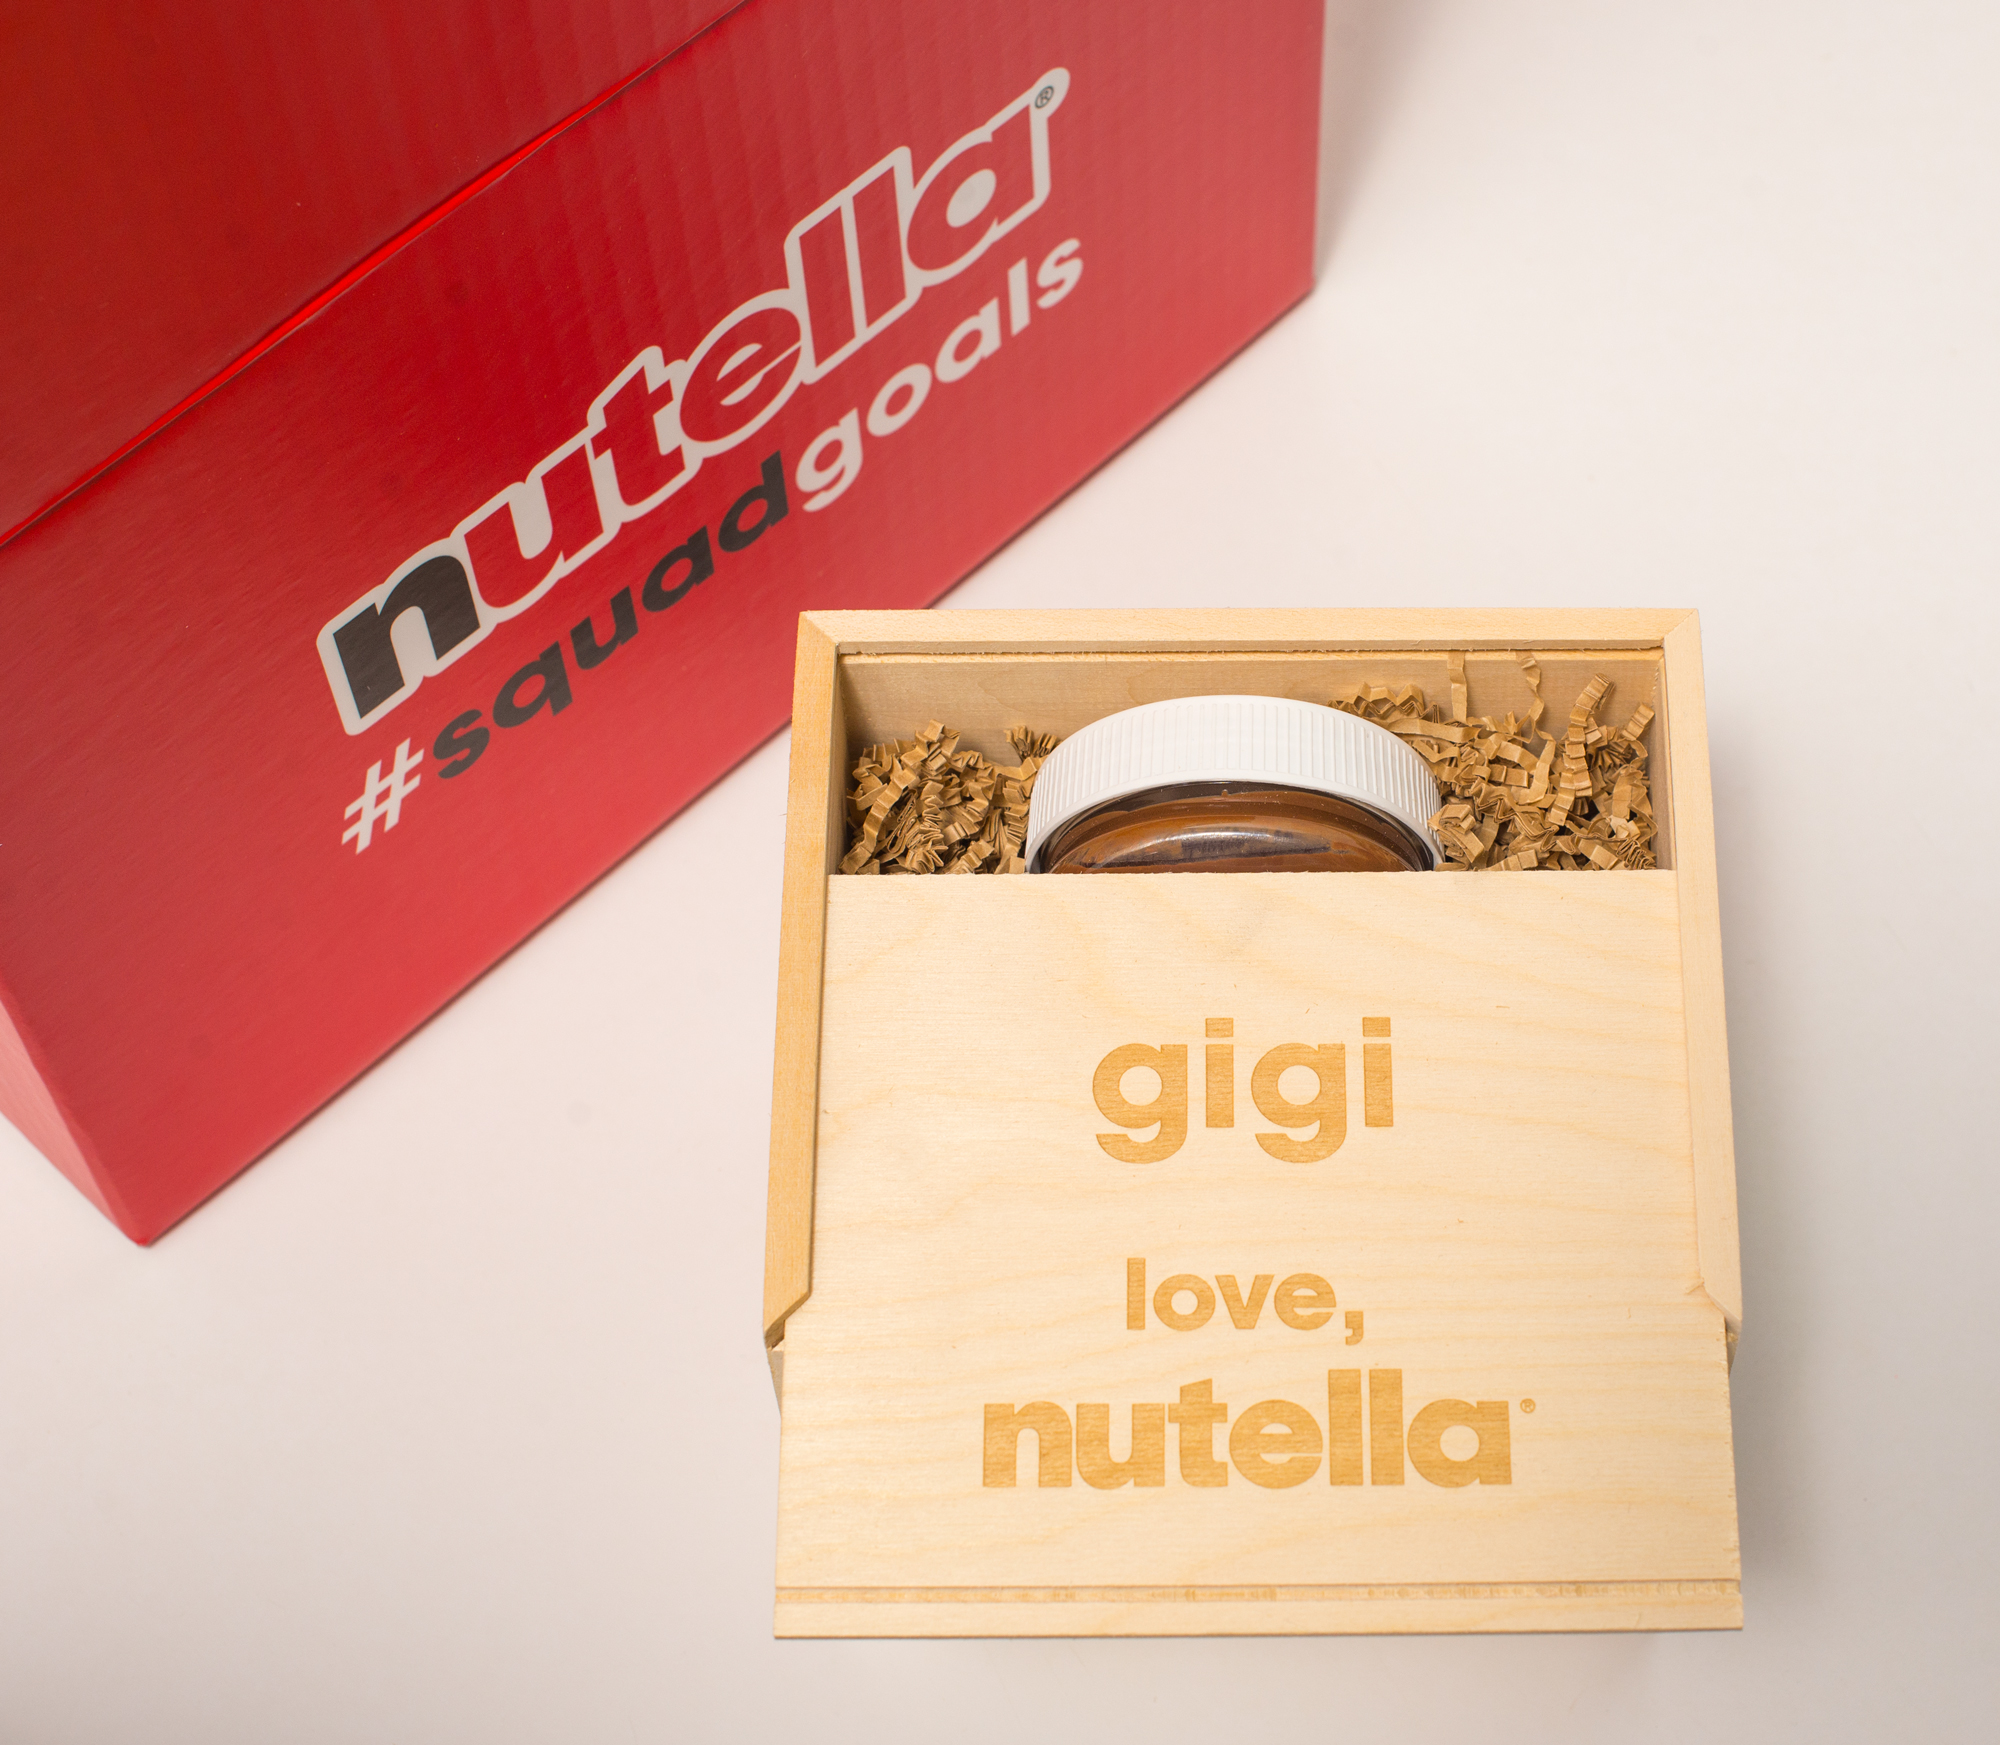 Nutella-Gigi-Box-2.jpg